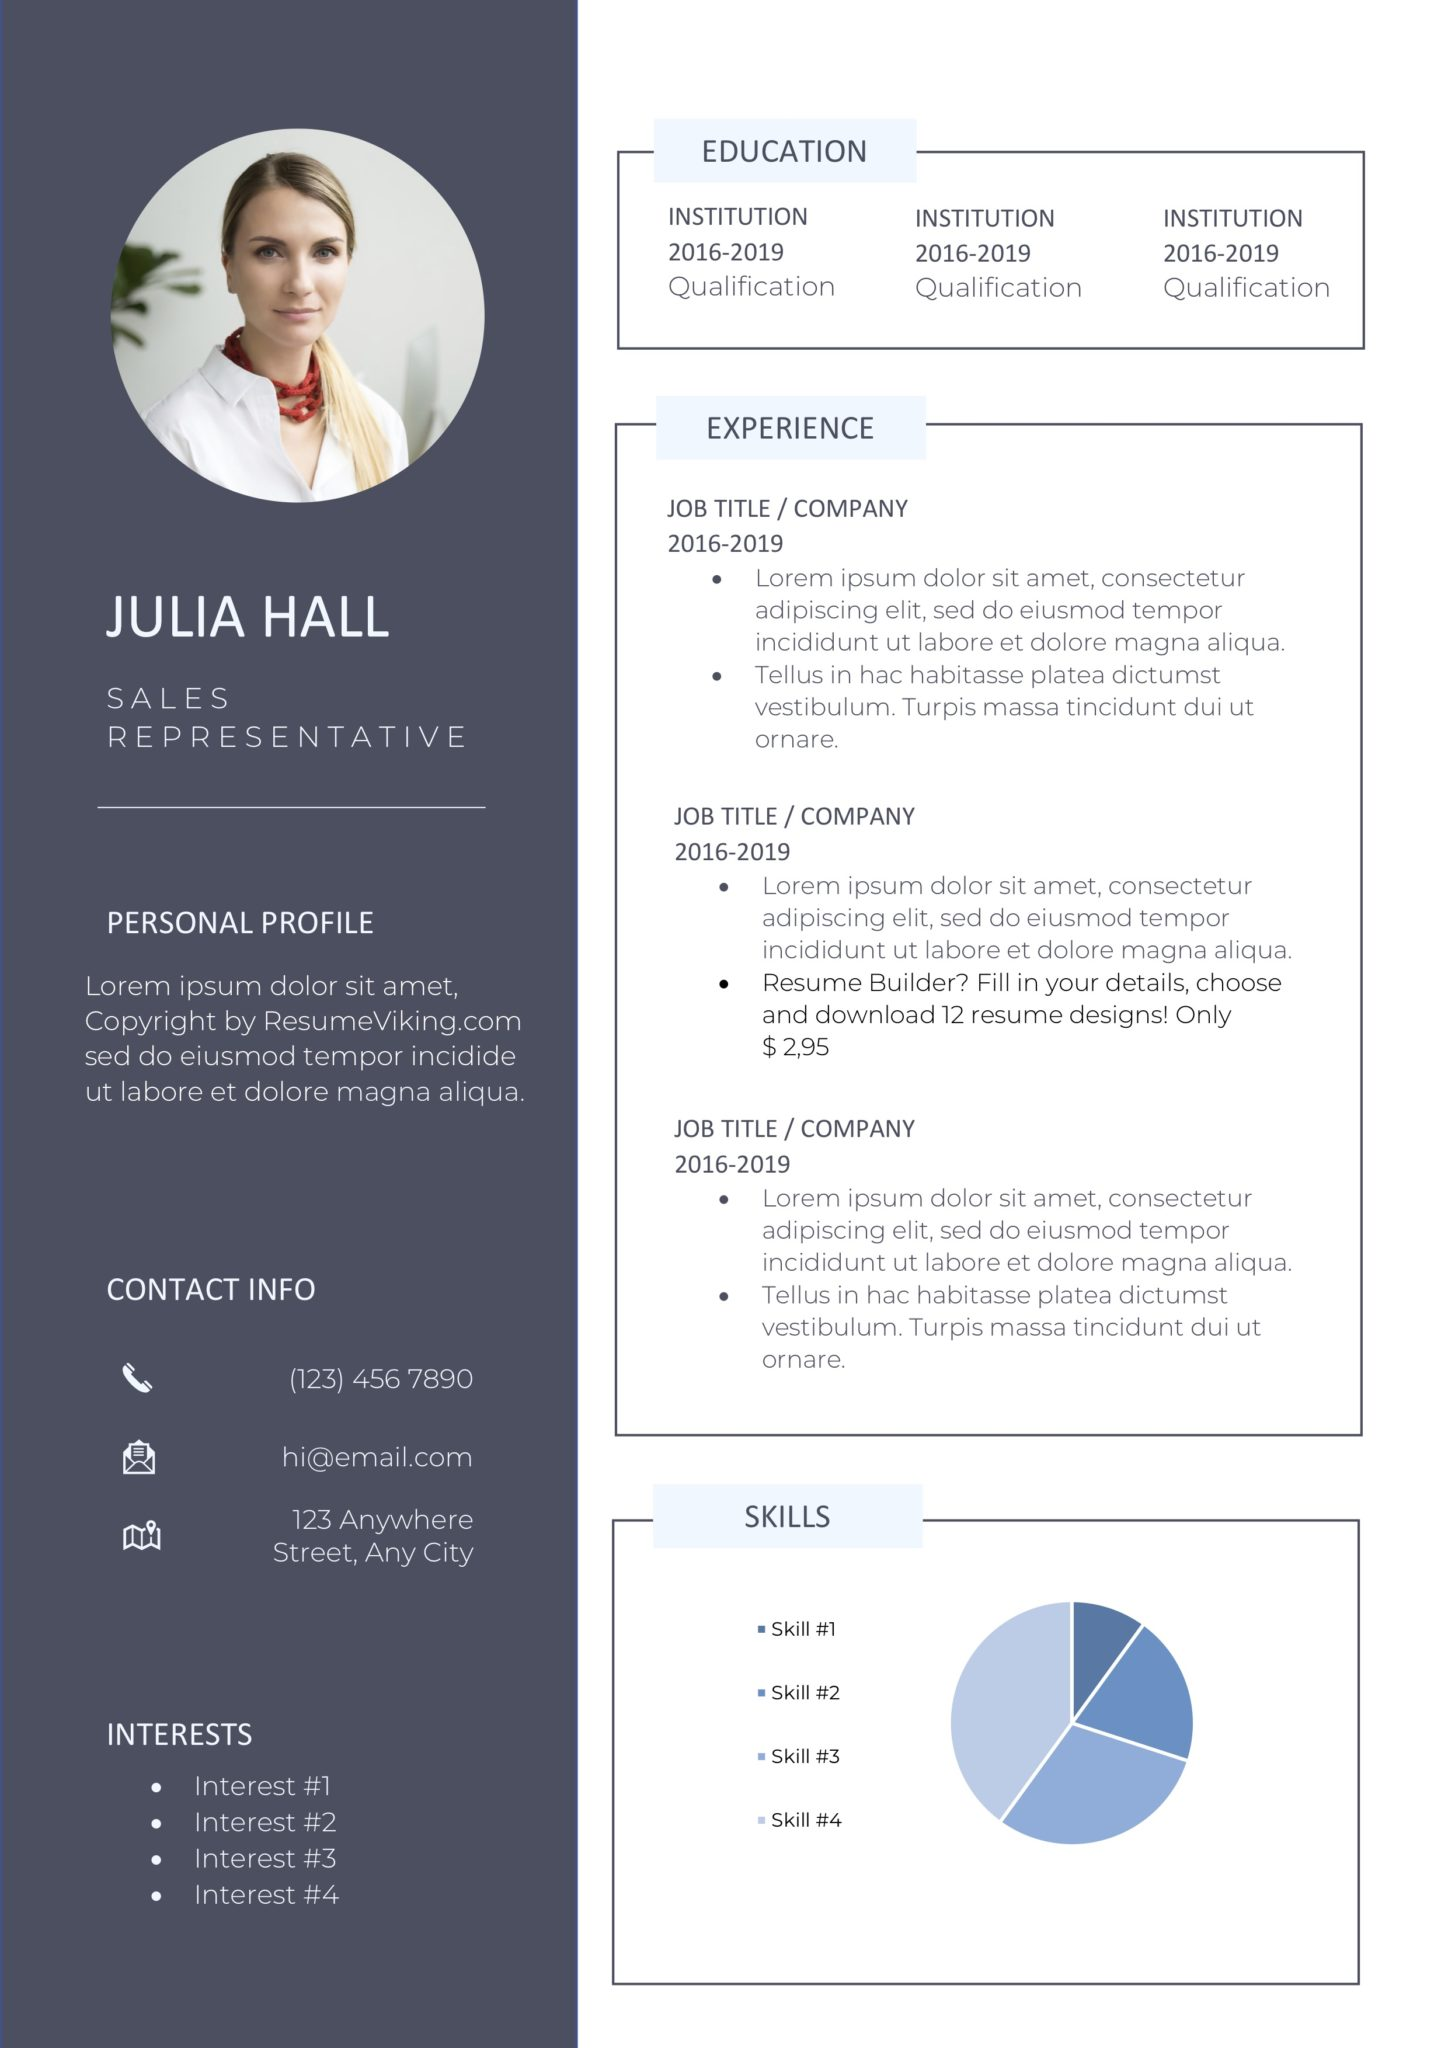 free word resume templates in ms format template resumeviking scaled medical referral Resume Free Resume Templates In Word Format